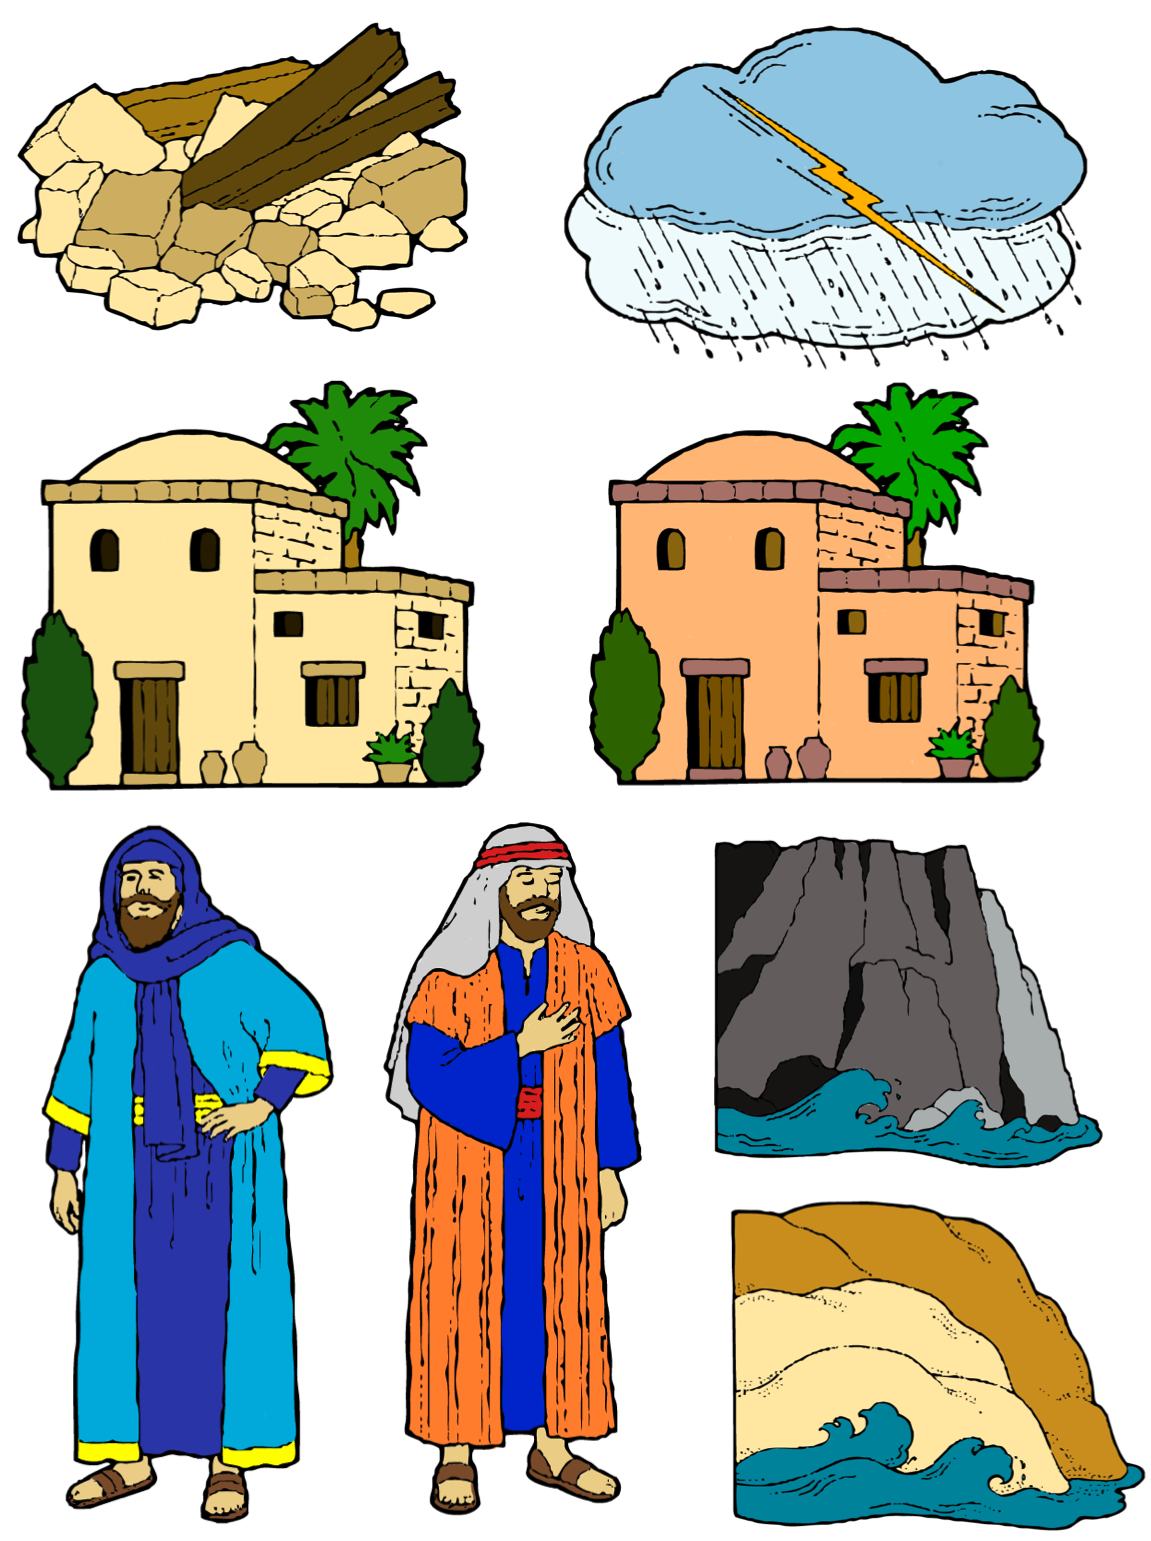 The and foolish story. King clipart wise man